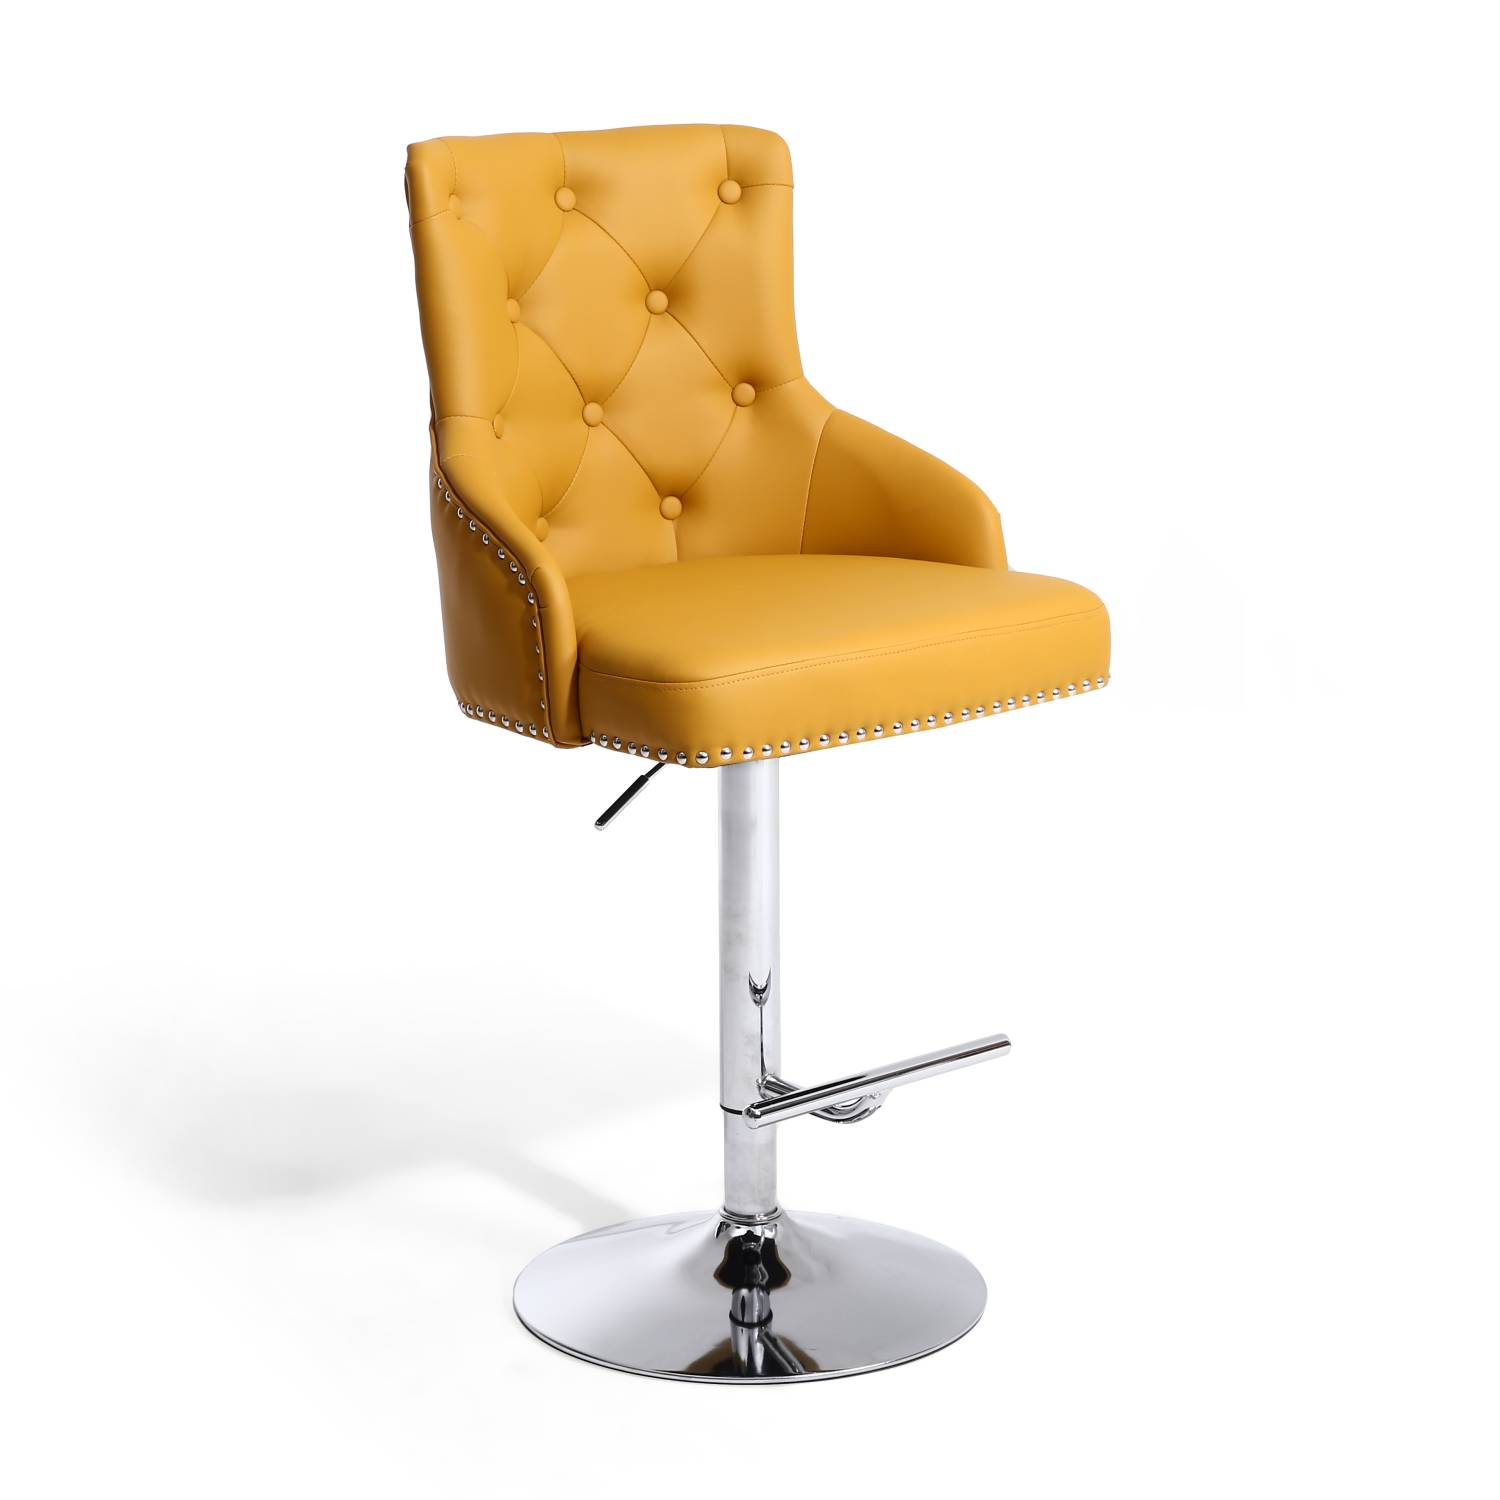 Rockley Yellow Faux Leather & Chrome Buttoned Bar Stool